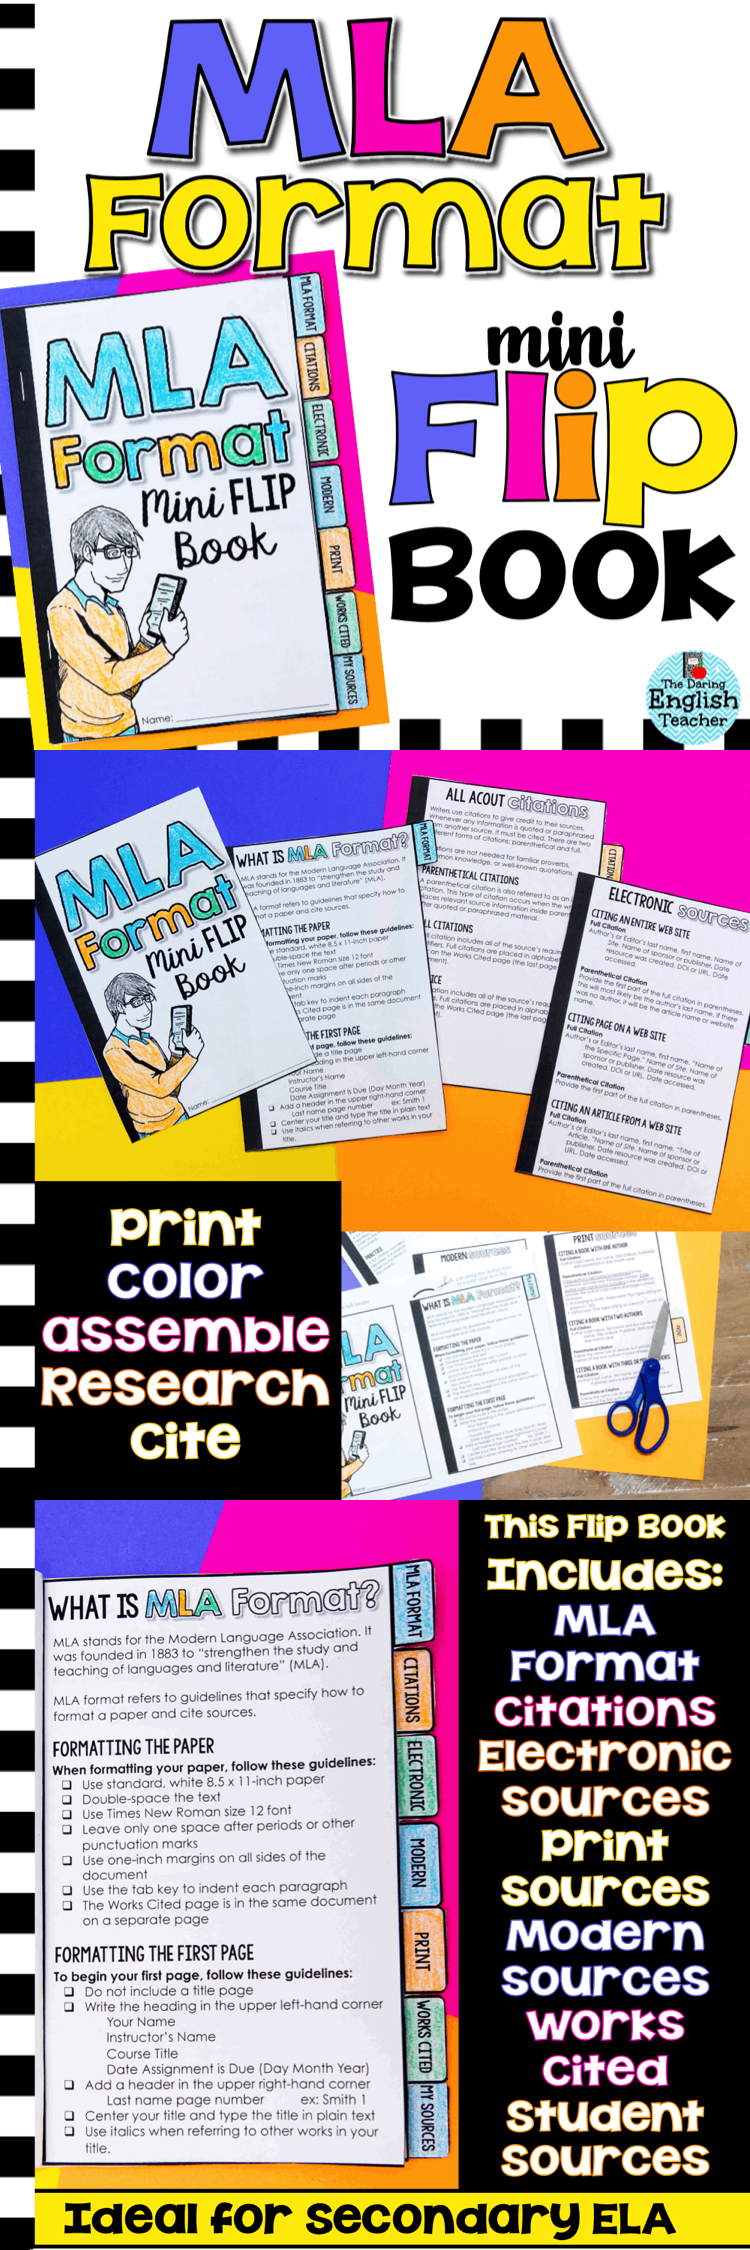 8th edition mla format mini flip book for secondary students help 8th edition mla format mini flip book for secondary students help your students format their papers and cite their sources with this mla style guide ccuart Images